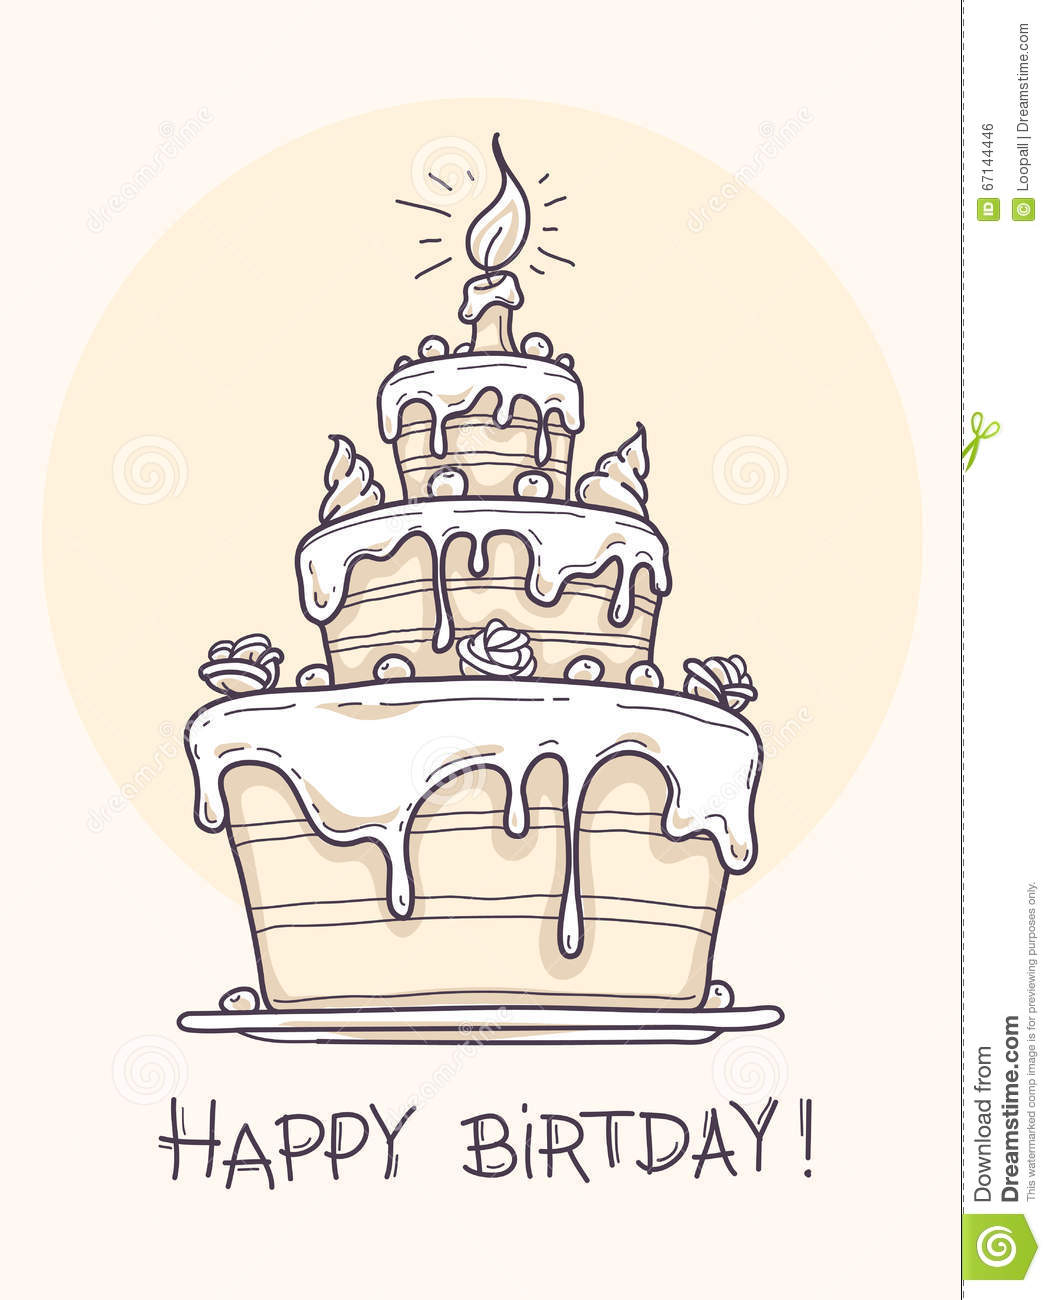 birthday cake for drawing ; greeting-card-big-birthday-cake-contour-drawing-vector-illustration-transparent-objects-used-lights-shadows-drawing-67144446